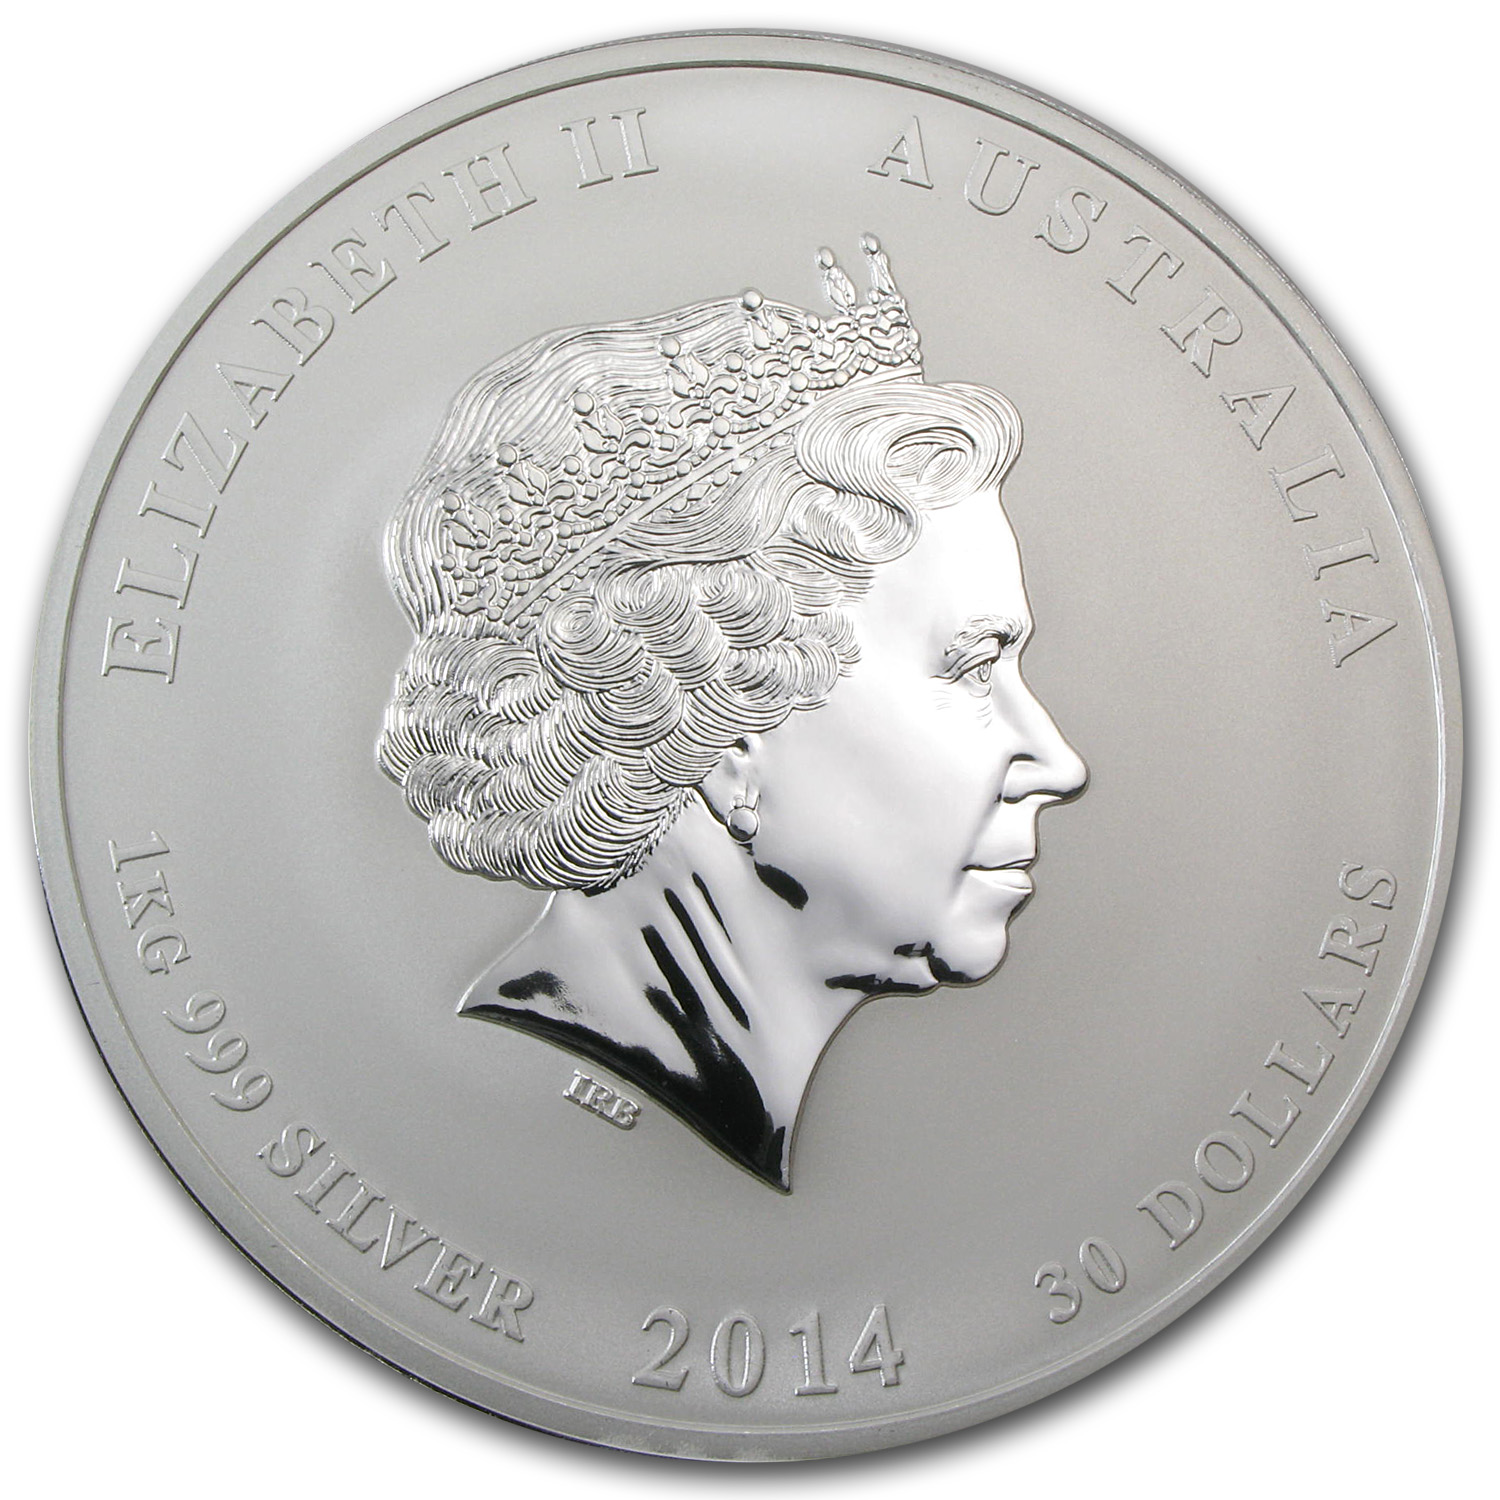 2014 Australia 1 kilo Silver Year of the Horse (Colorized)